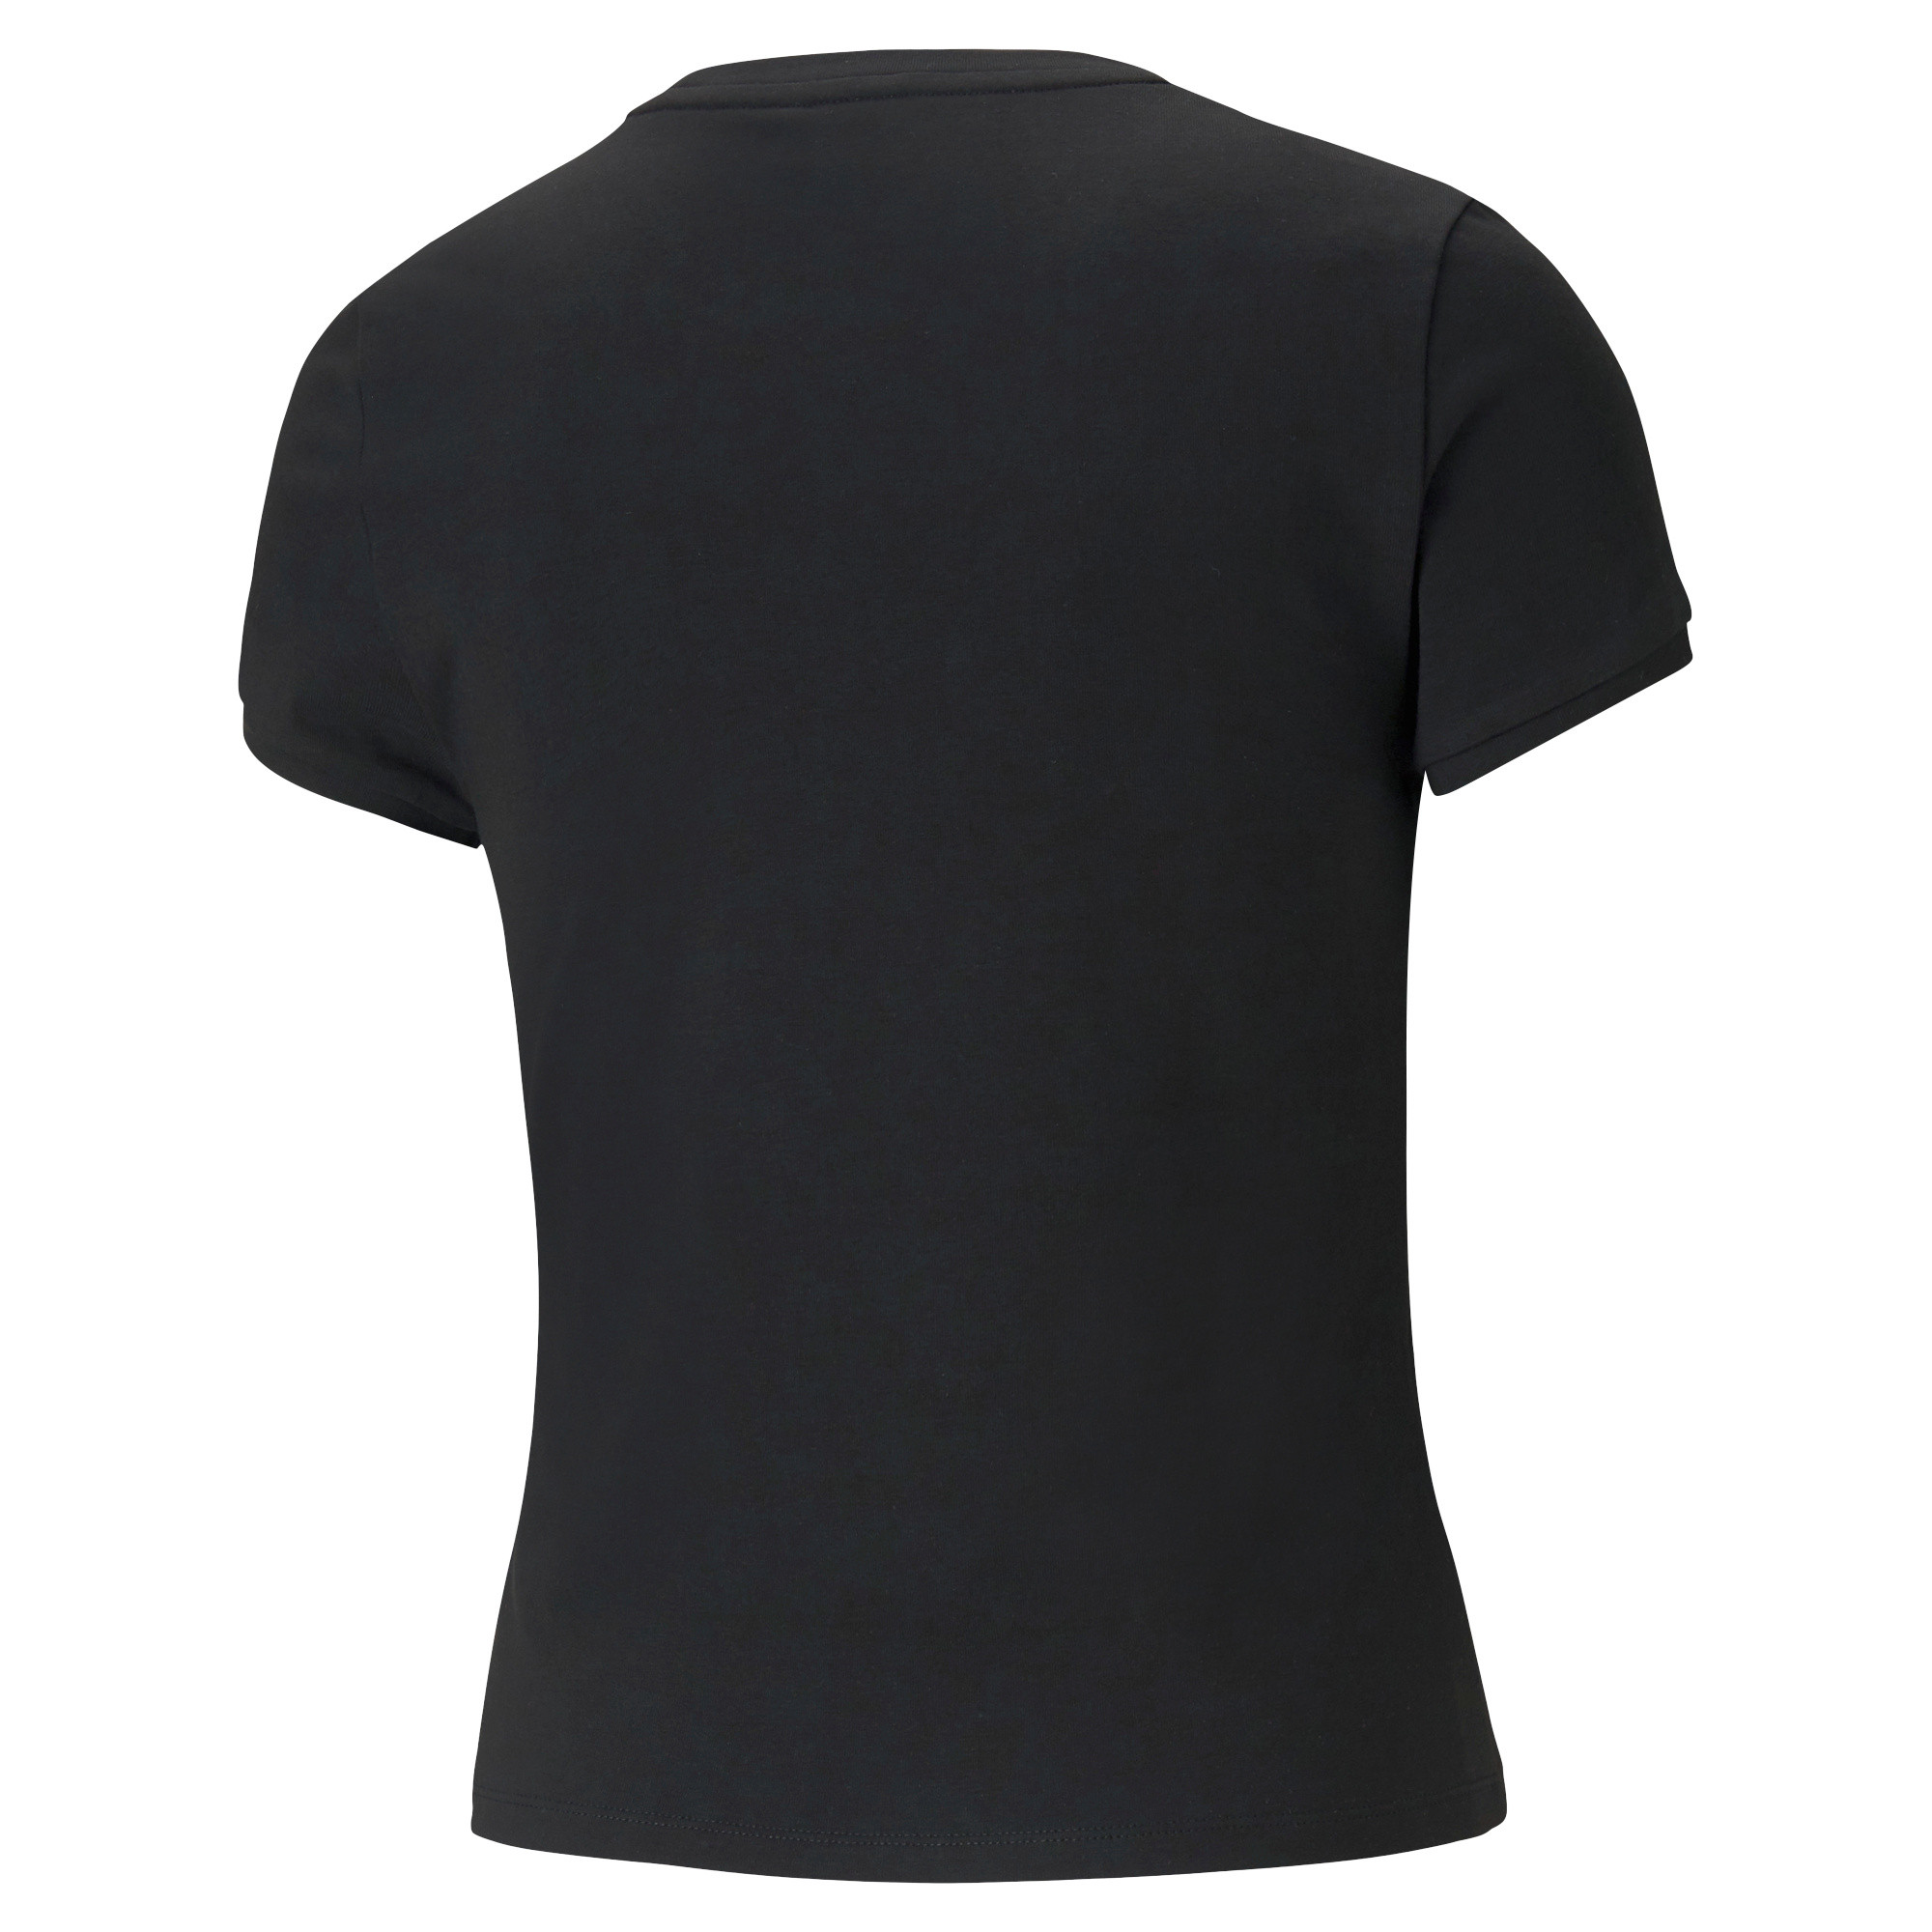 T-shirt sportiva aderente Classics Collection, Nero, large image number 1